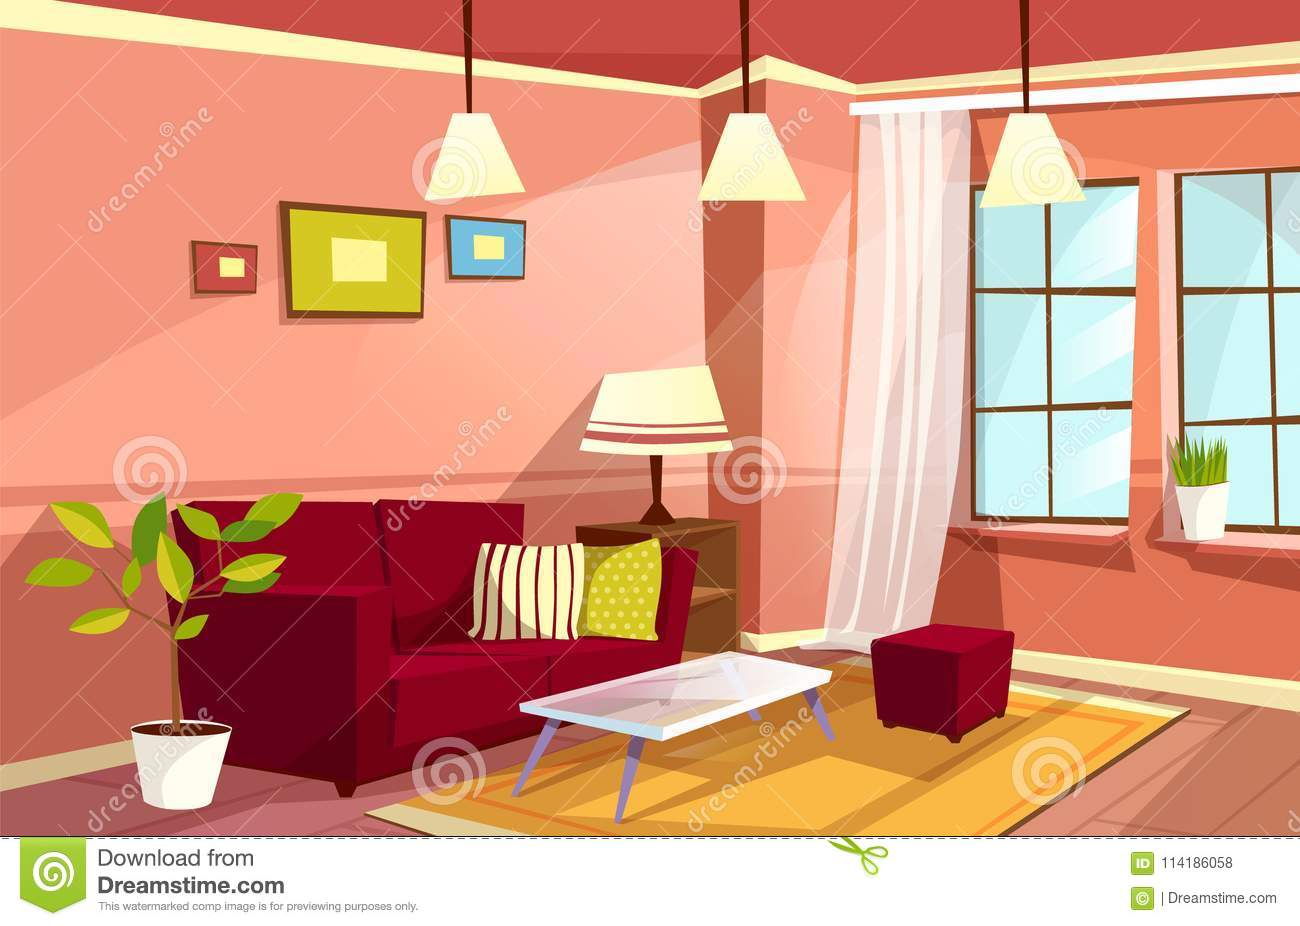 Vector Cartoon Living Room Interior Background Template Cozy House Apartment Concept Illustration With Sofa Pillow Bedside Table Lamp Bookshelf